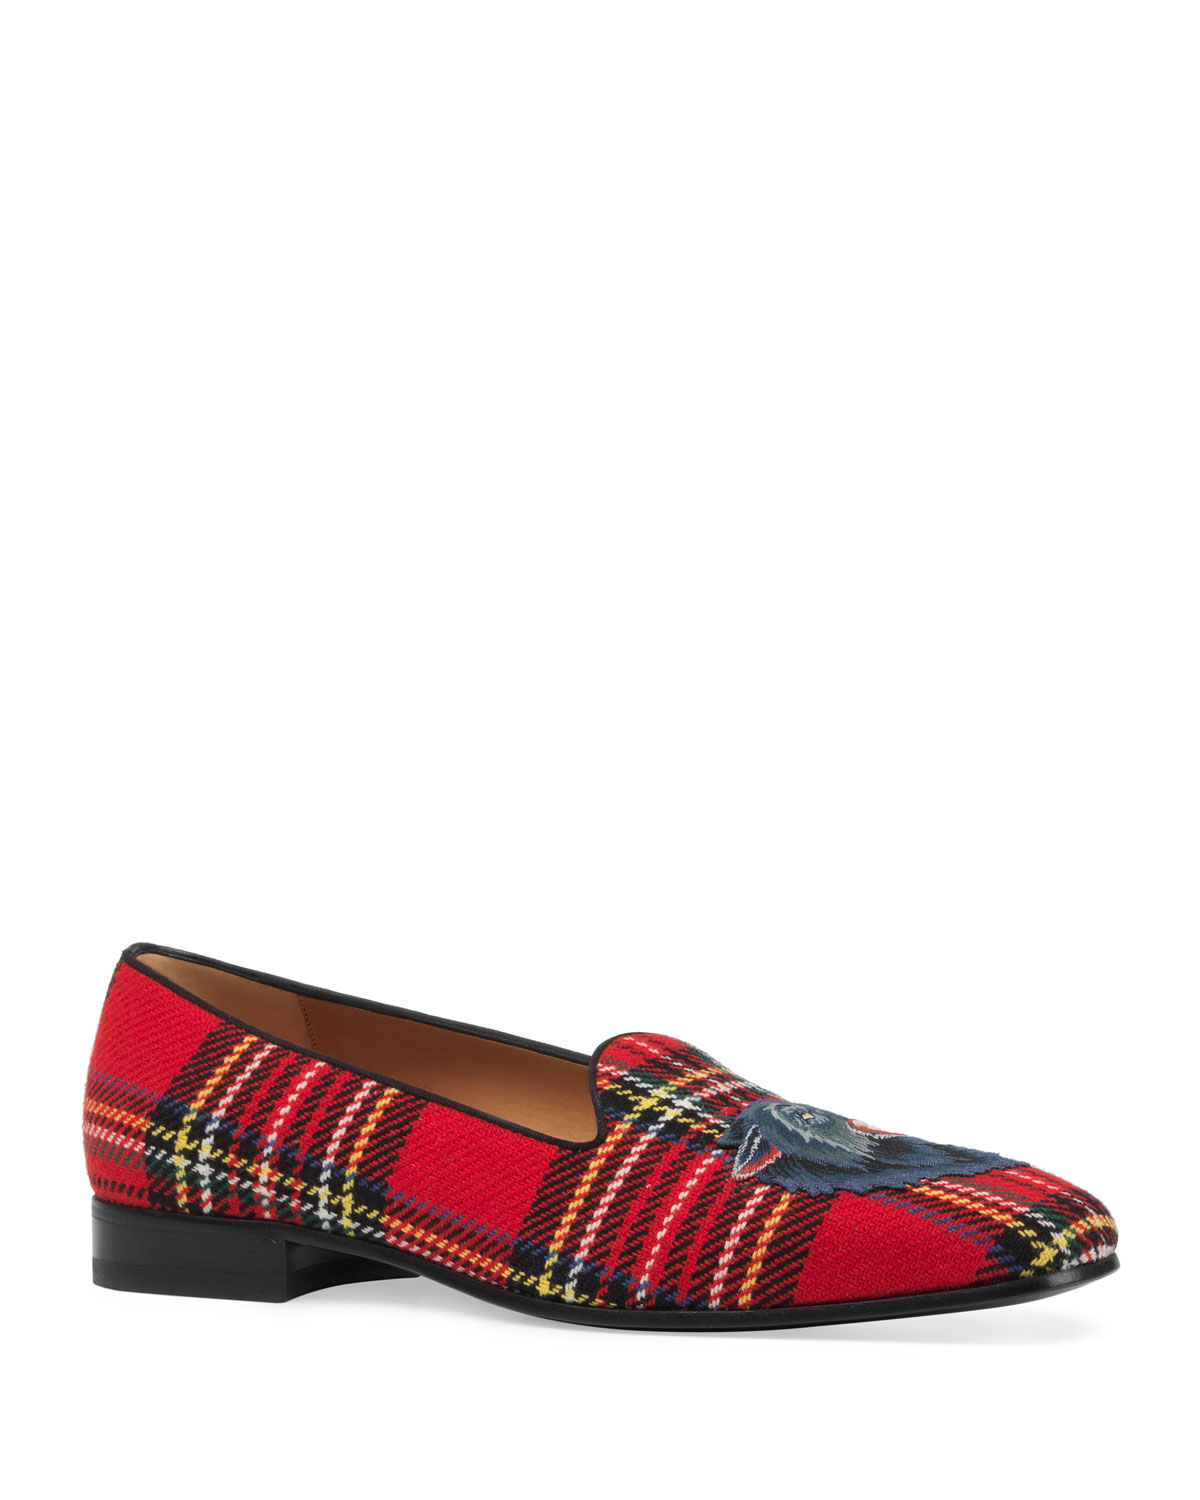 a08967af499 Gucci Tartan Slipper with Wolf Appliqué